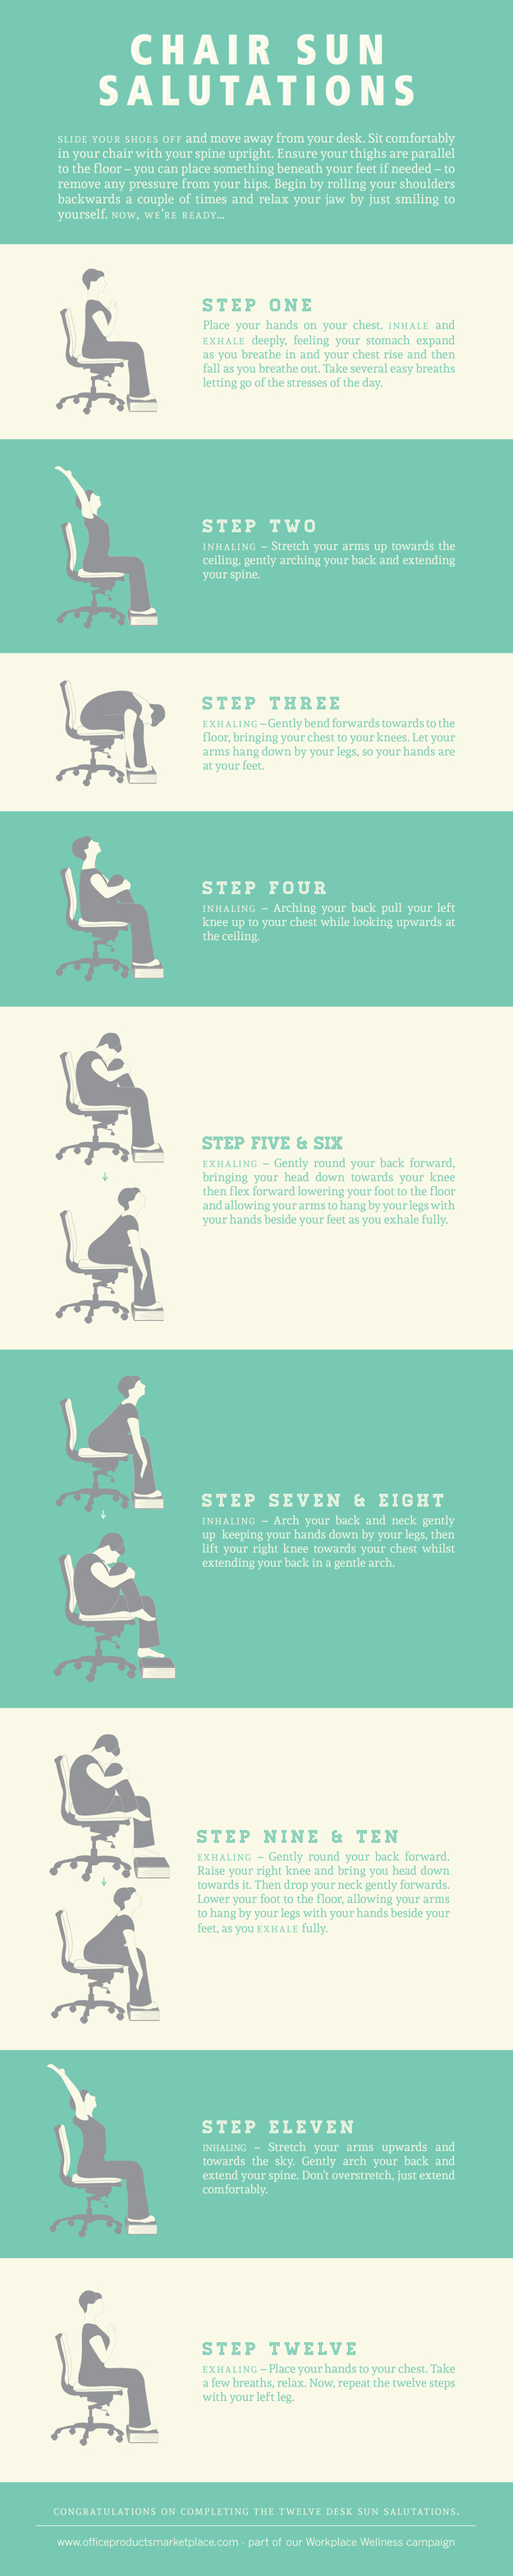 Desk Exercises To Make The Most Of Your Workday